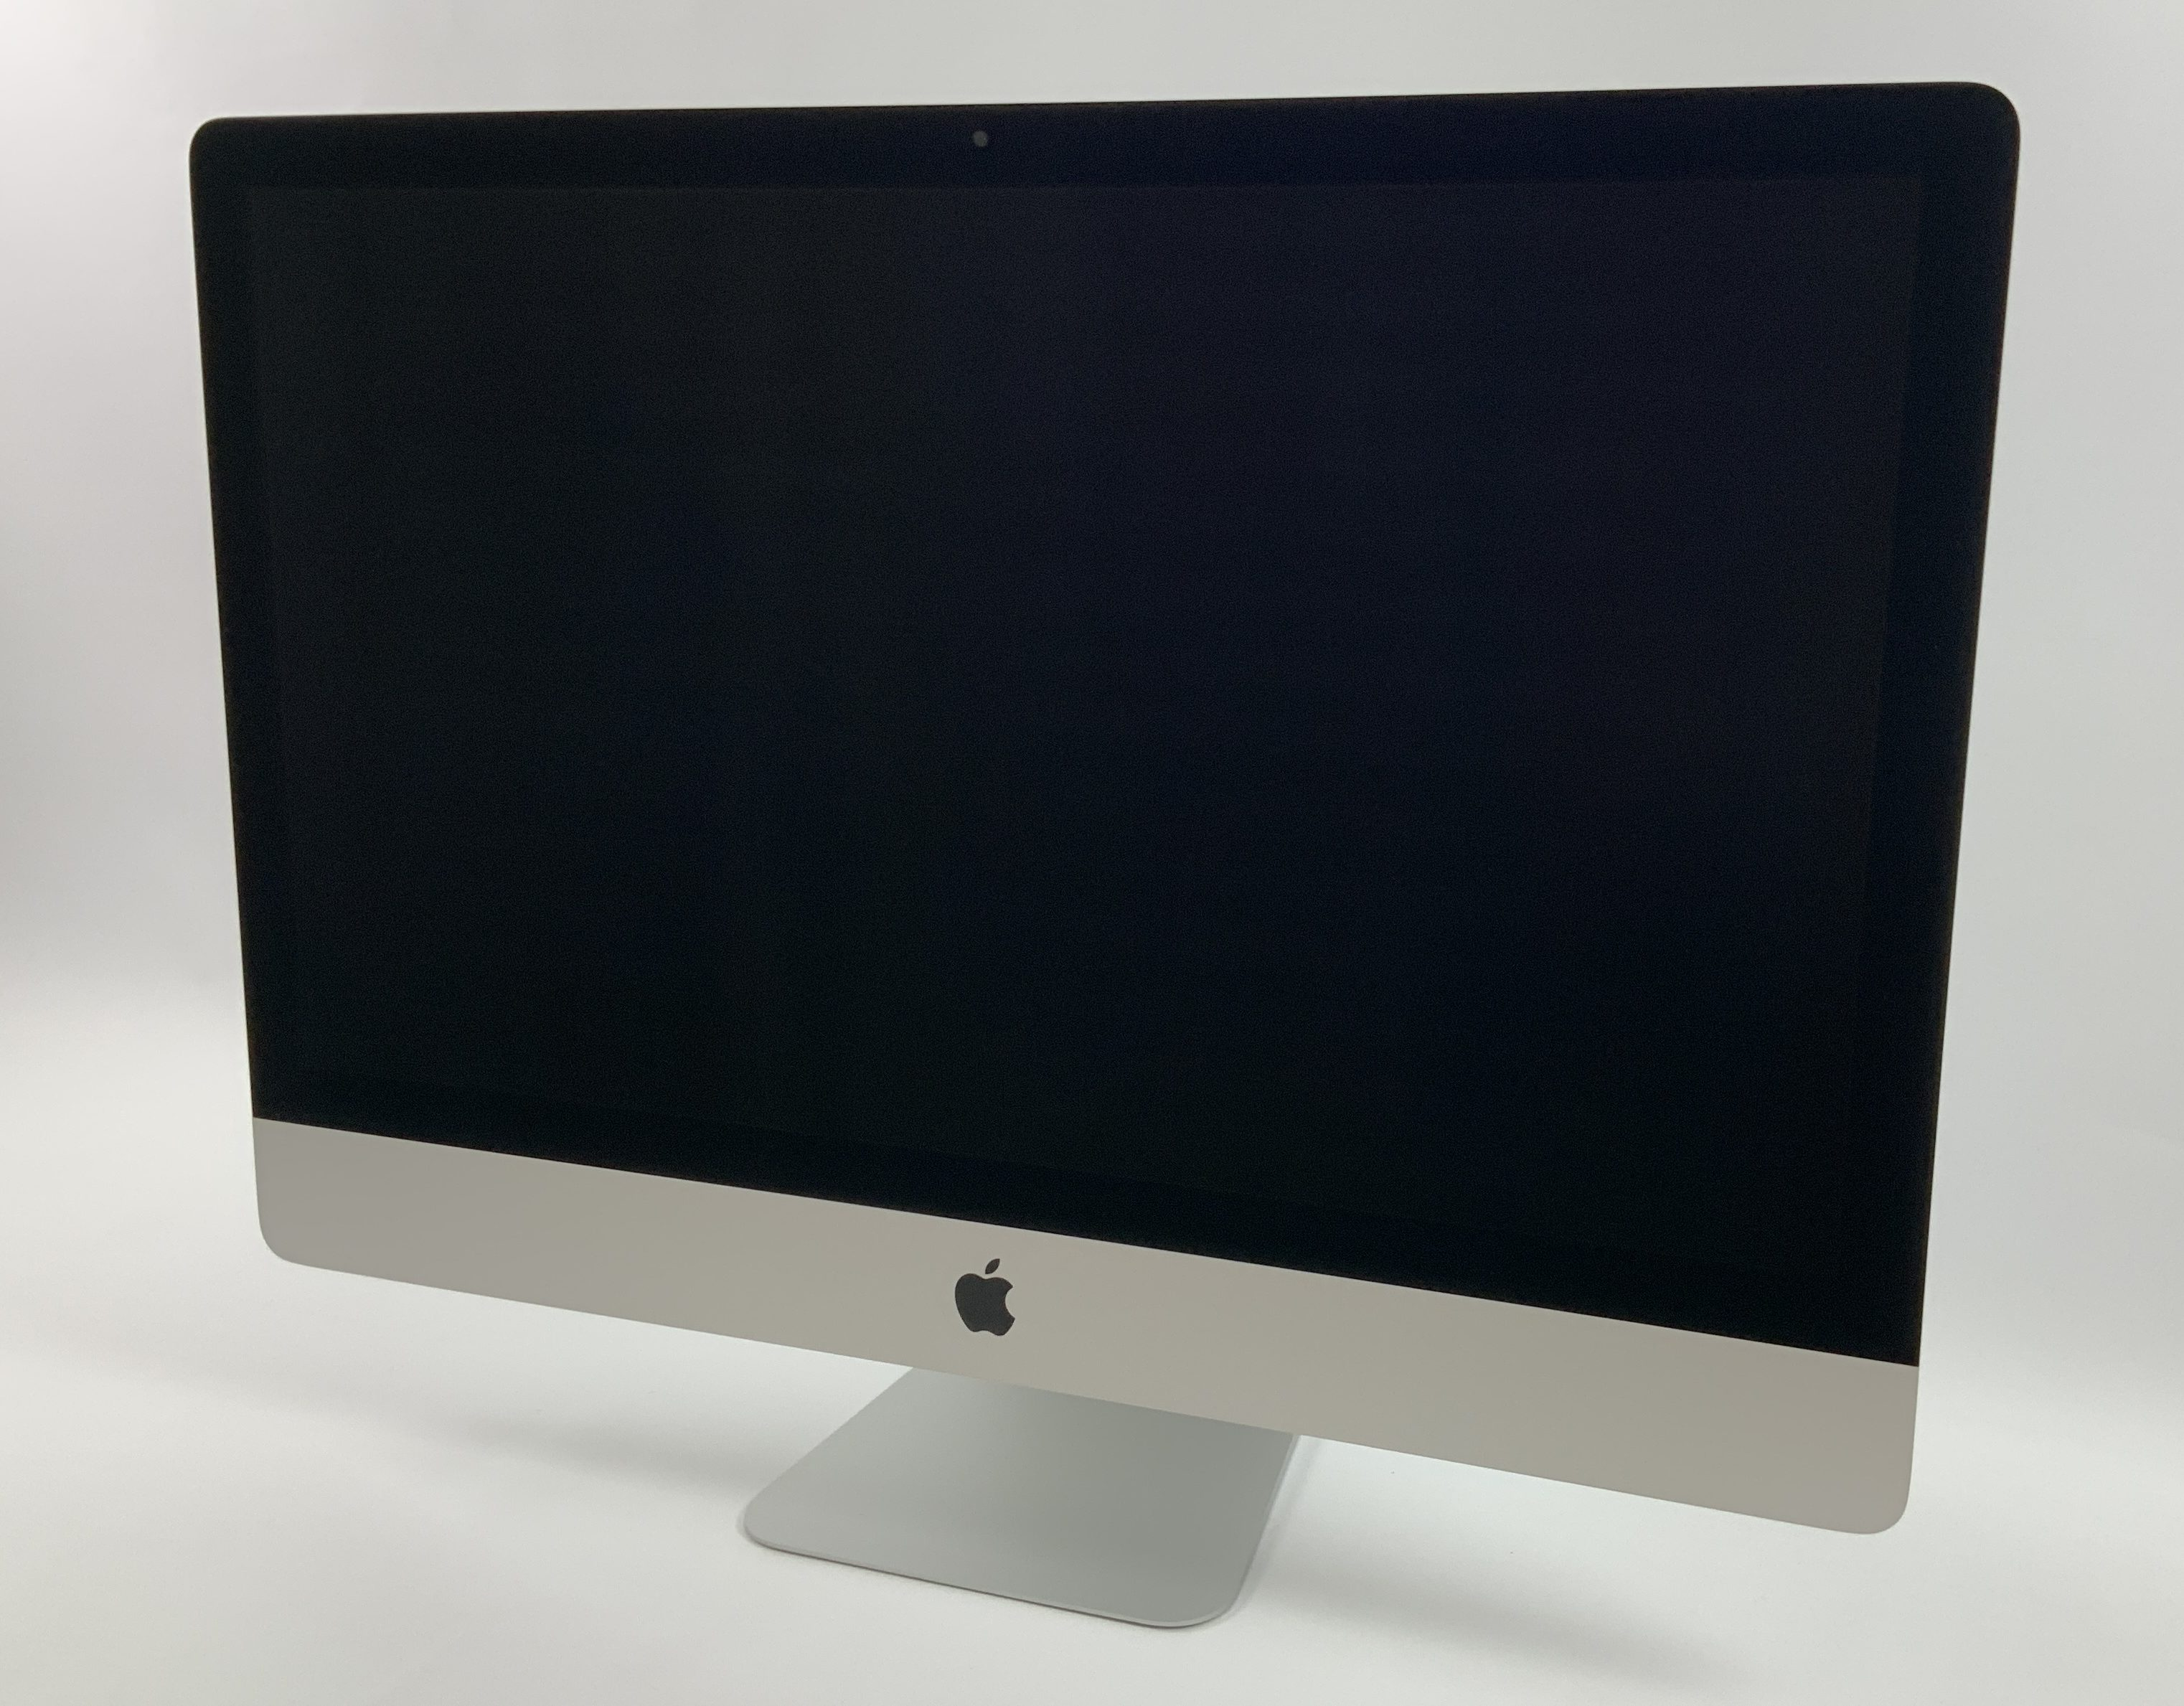 "iMac 27"" Retina 5K Late 2015 (Intel Quad-Core i5 3.2 GHz 8 GB RAM 1 TB HDD), Intel Quad-Core i5 3.2 GHz, 8 GB RAM, 1 TB HDD, obraz 1"